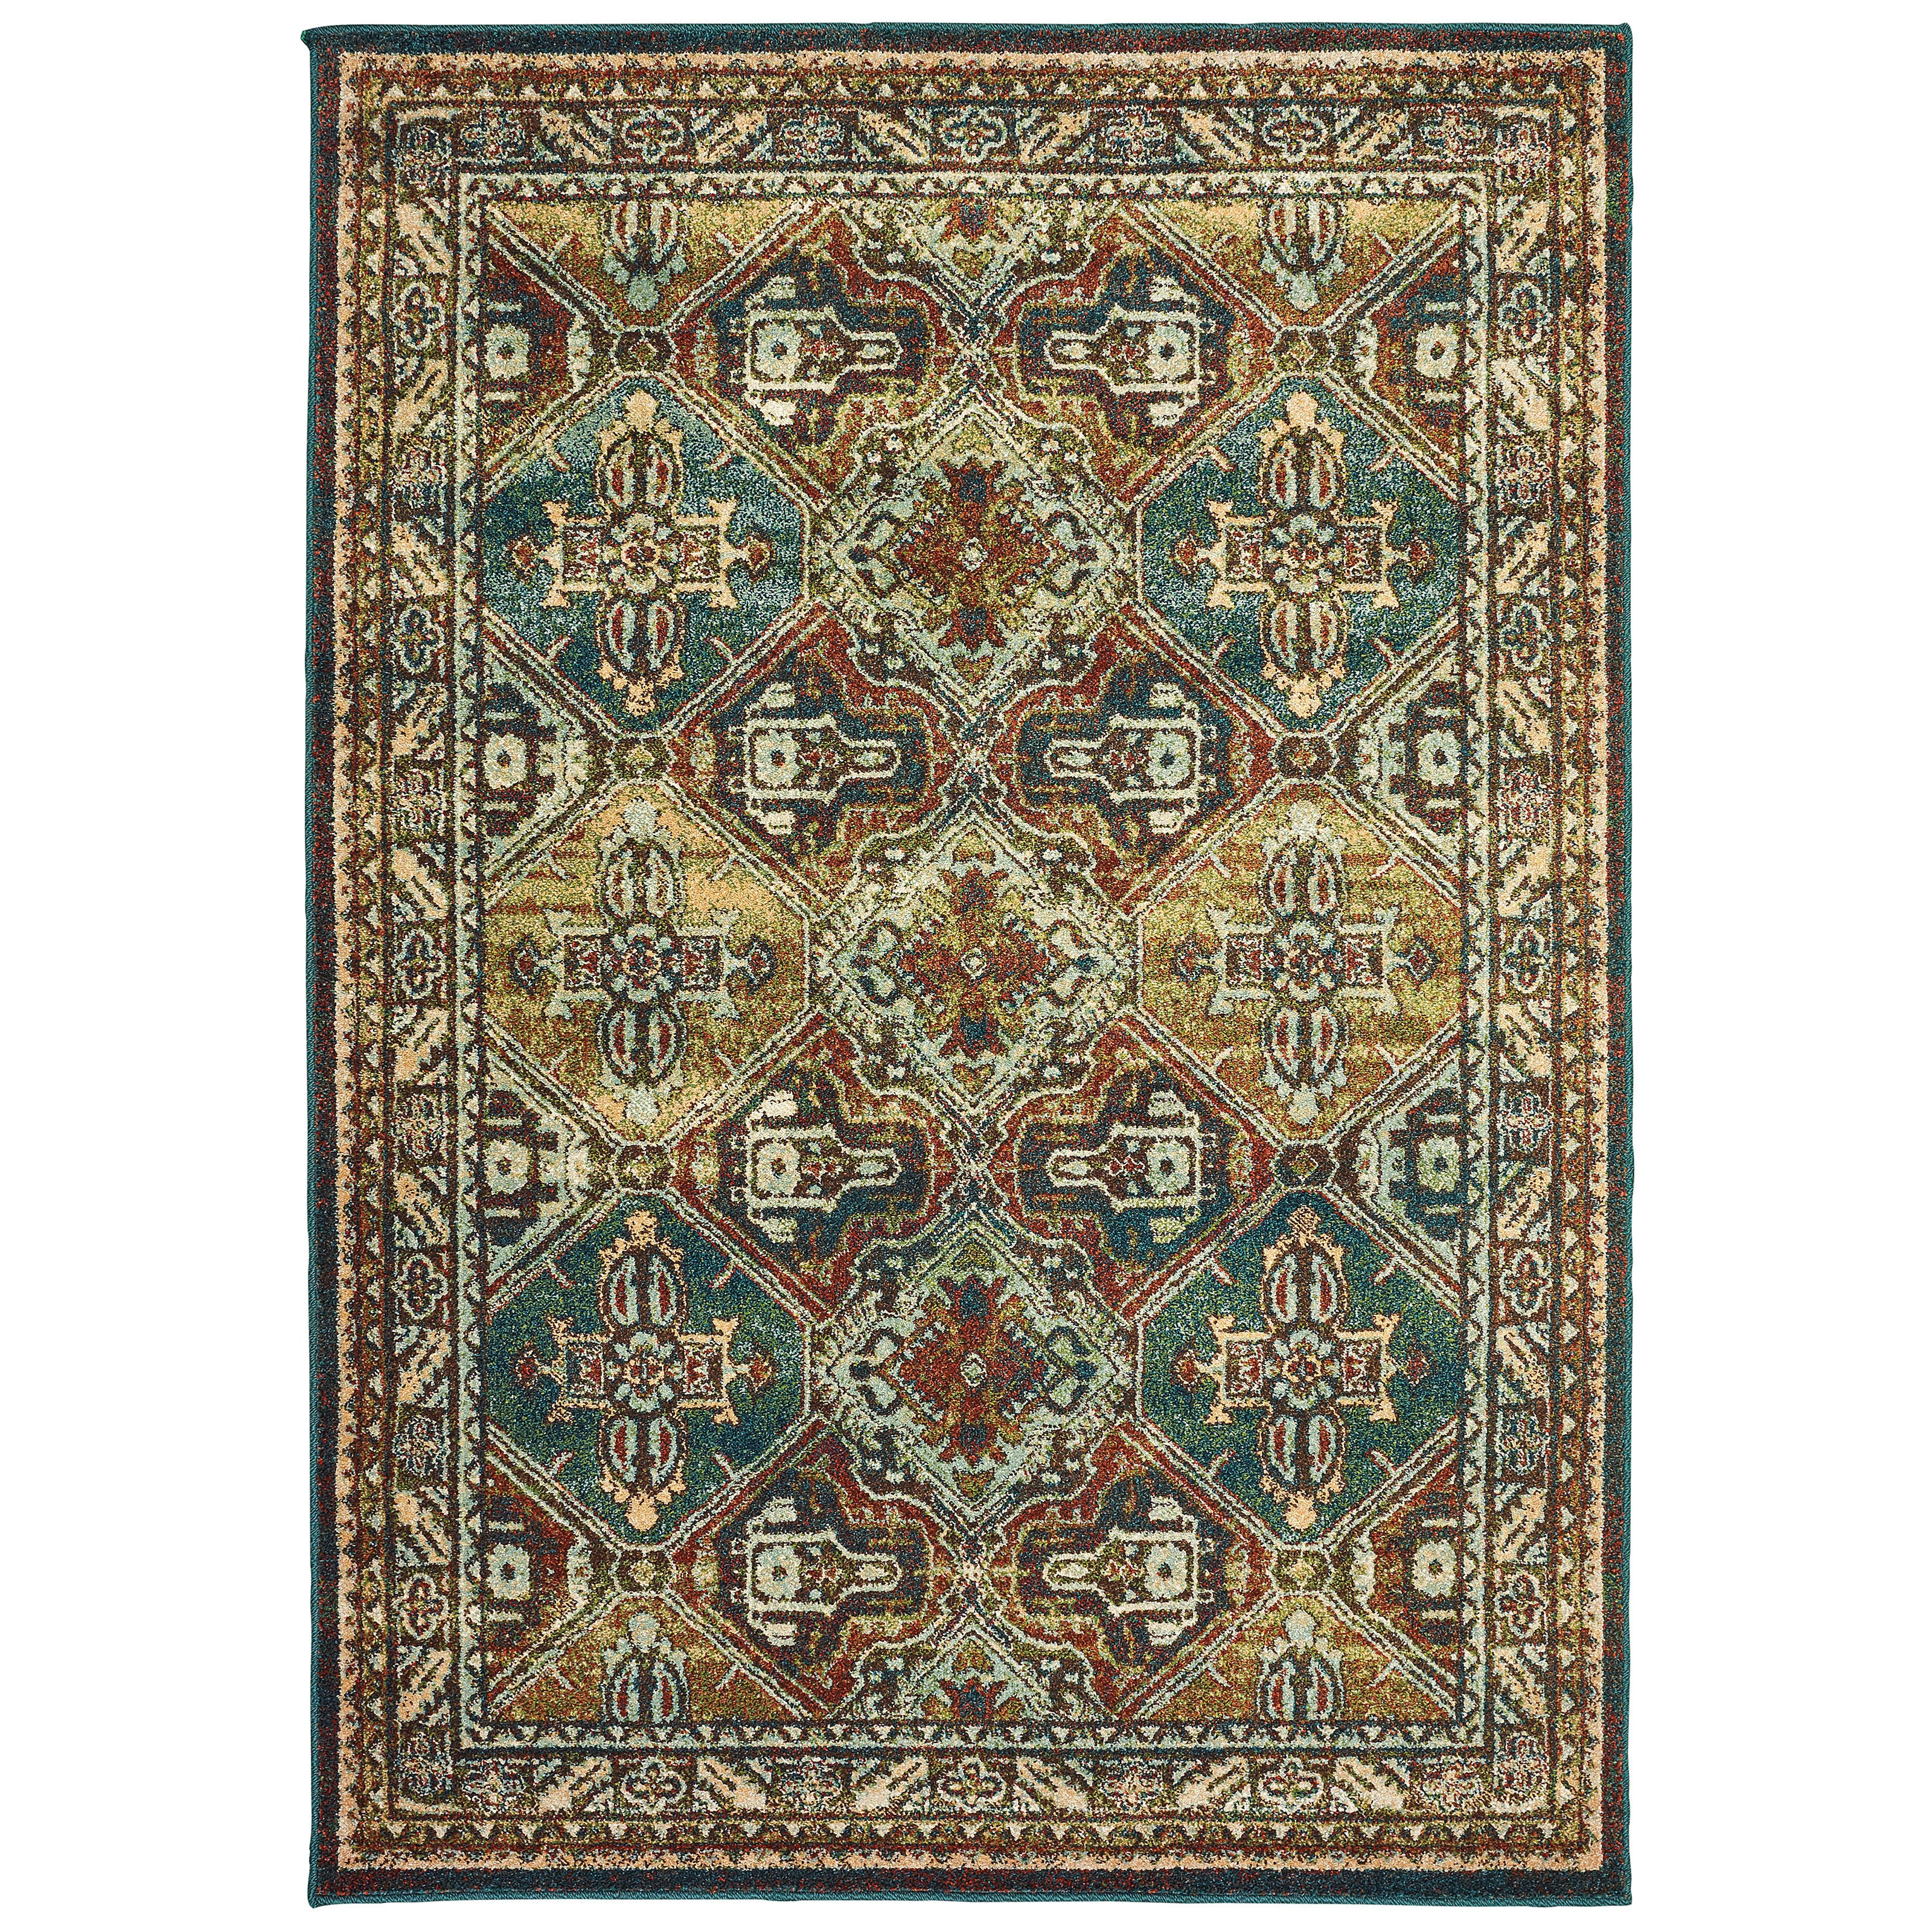 Shop Copper Grove Slatina Teal And Brown Area Rug 7 10 X 10 10